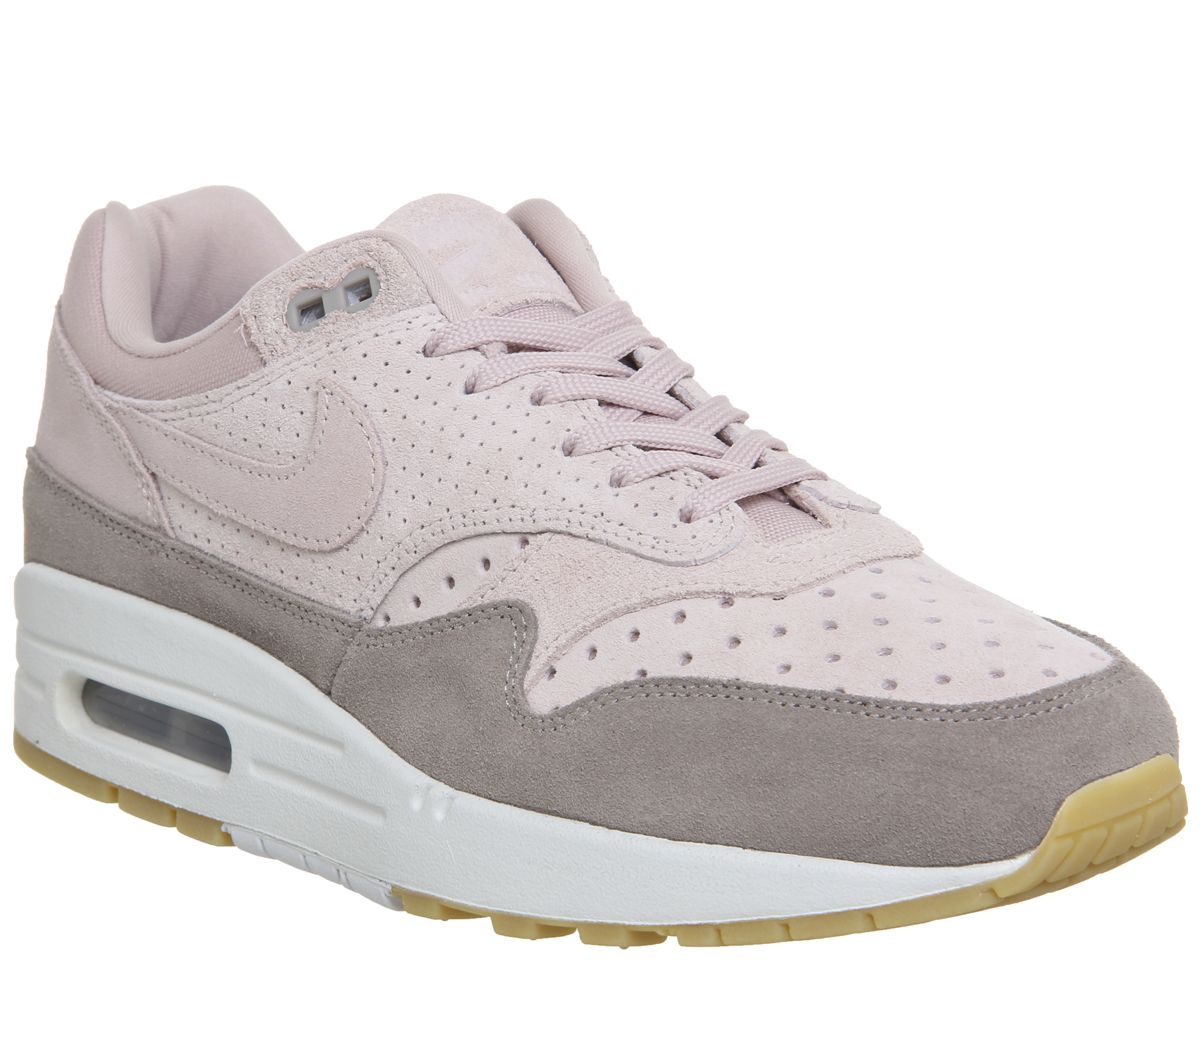 2d4345ce0d Nike Air Max 1 Trainers Particle Beige - Hers trainers